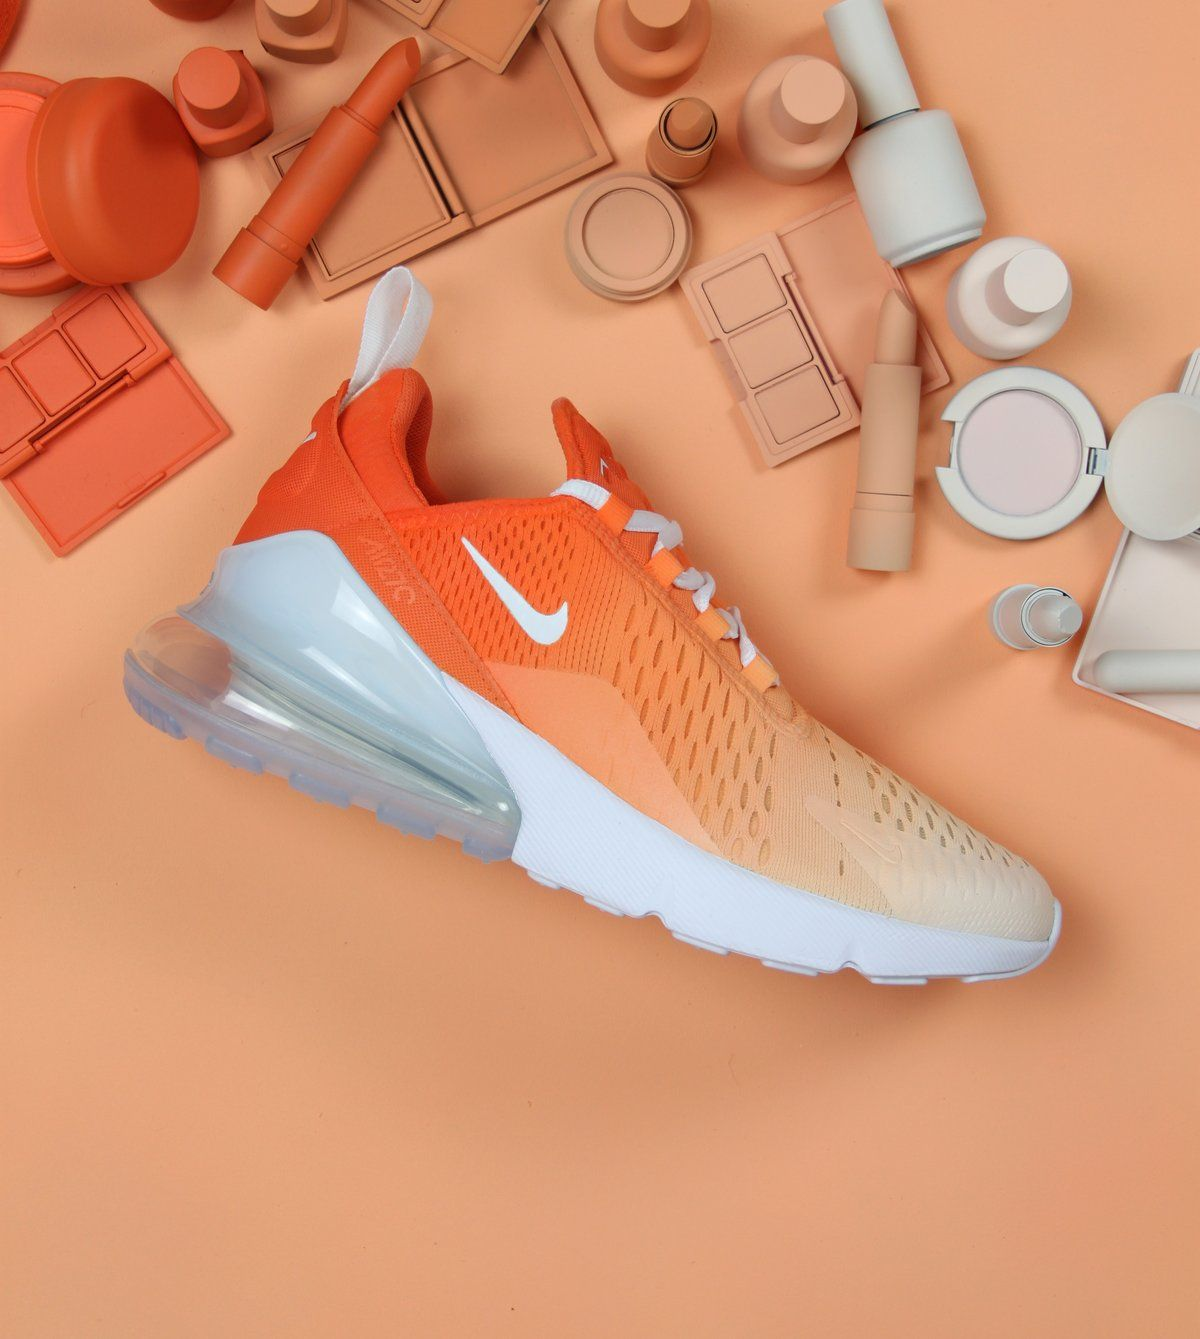 huge selection of b5570 b4ff1 Explore Our Custom Ombre Air Max 270 Orange Nike Shoes. If You Are Looking  For